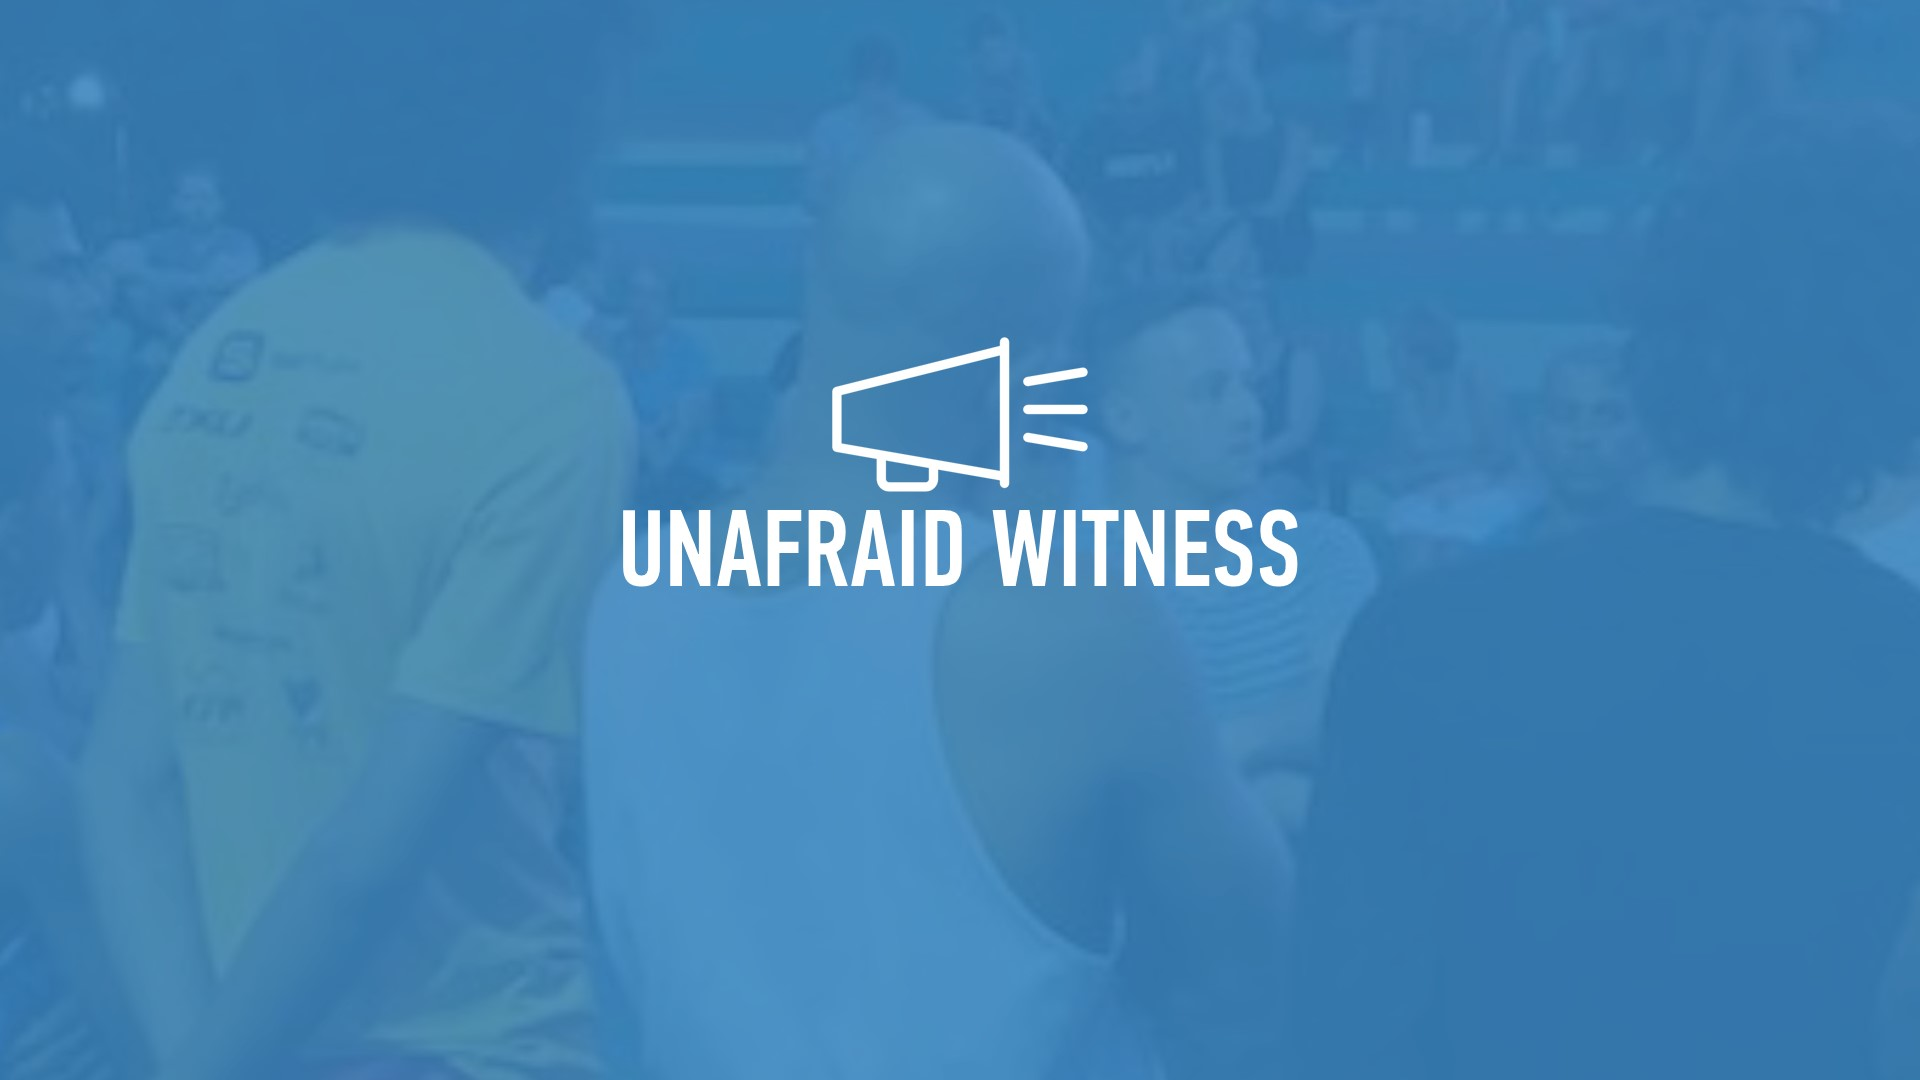 20190825 UNAFRAID WITNESS.JPG